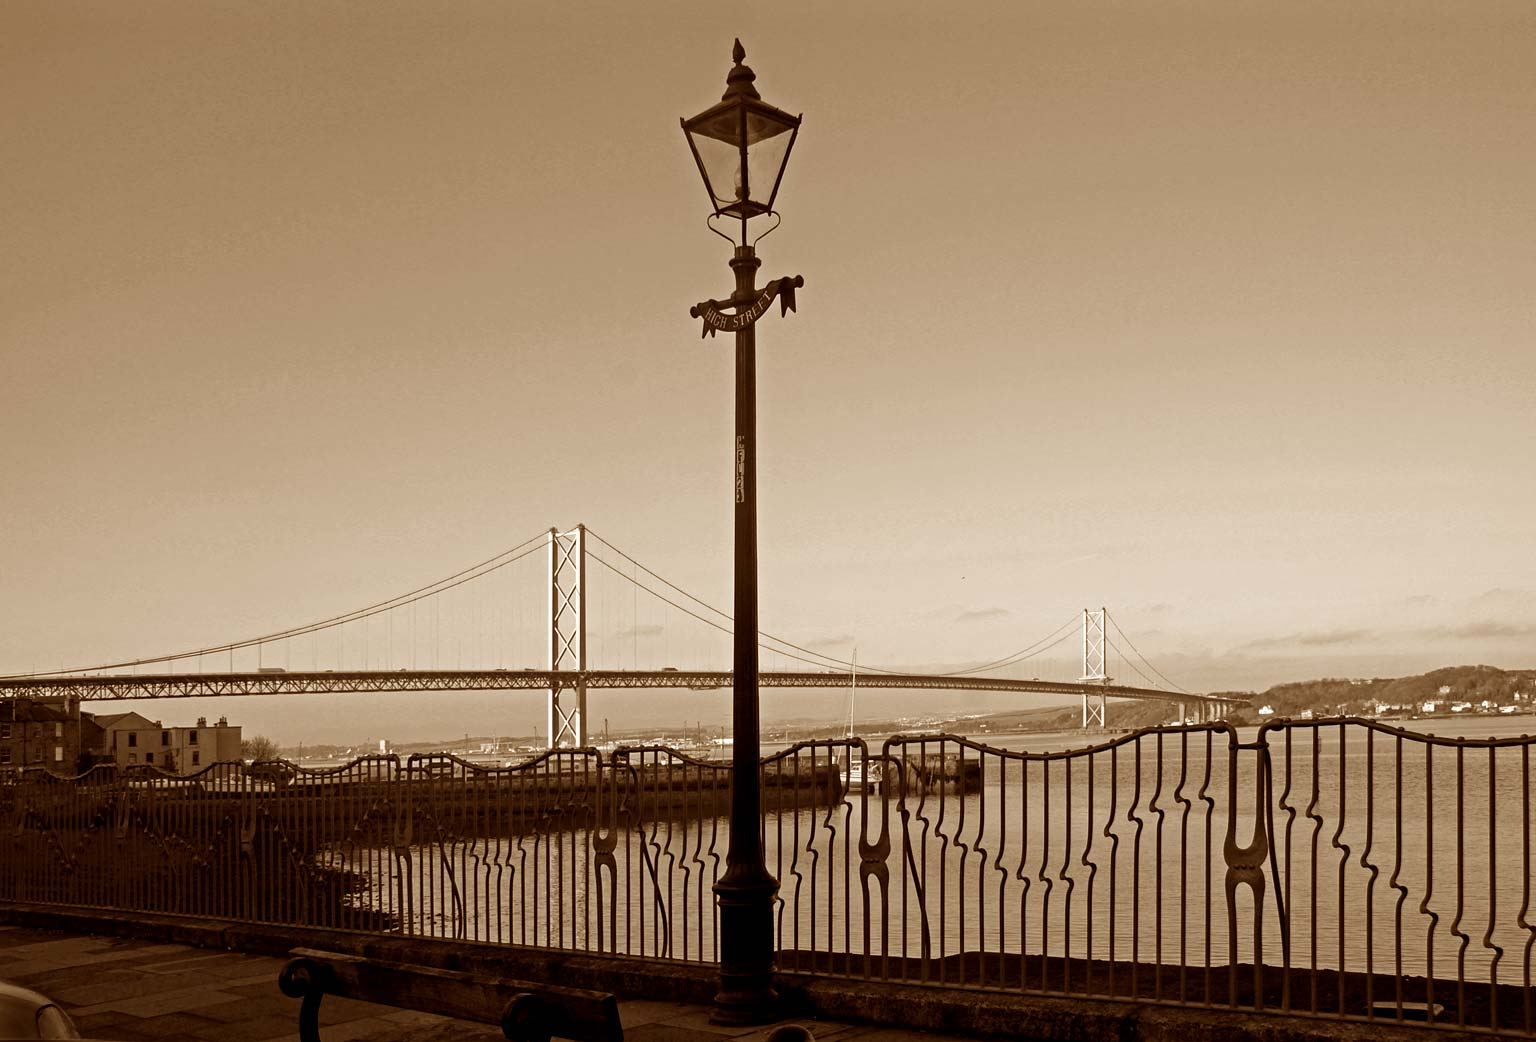 Lamp Post and Forth Road Bridge, from High Street, Queensferry